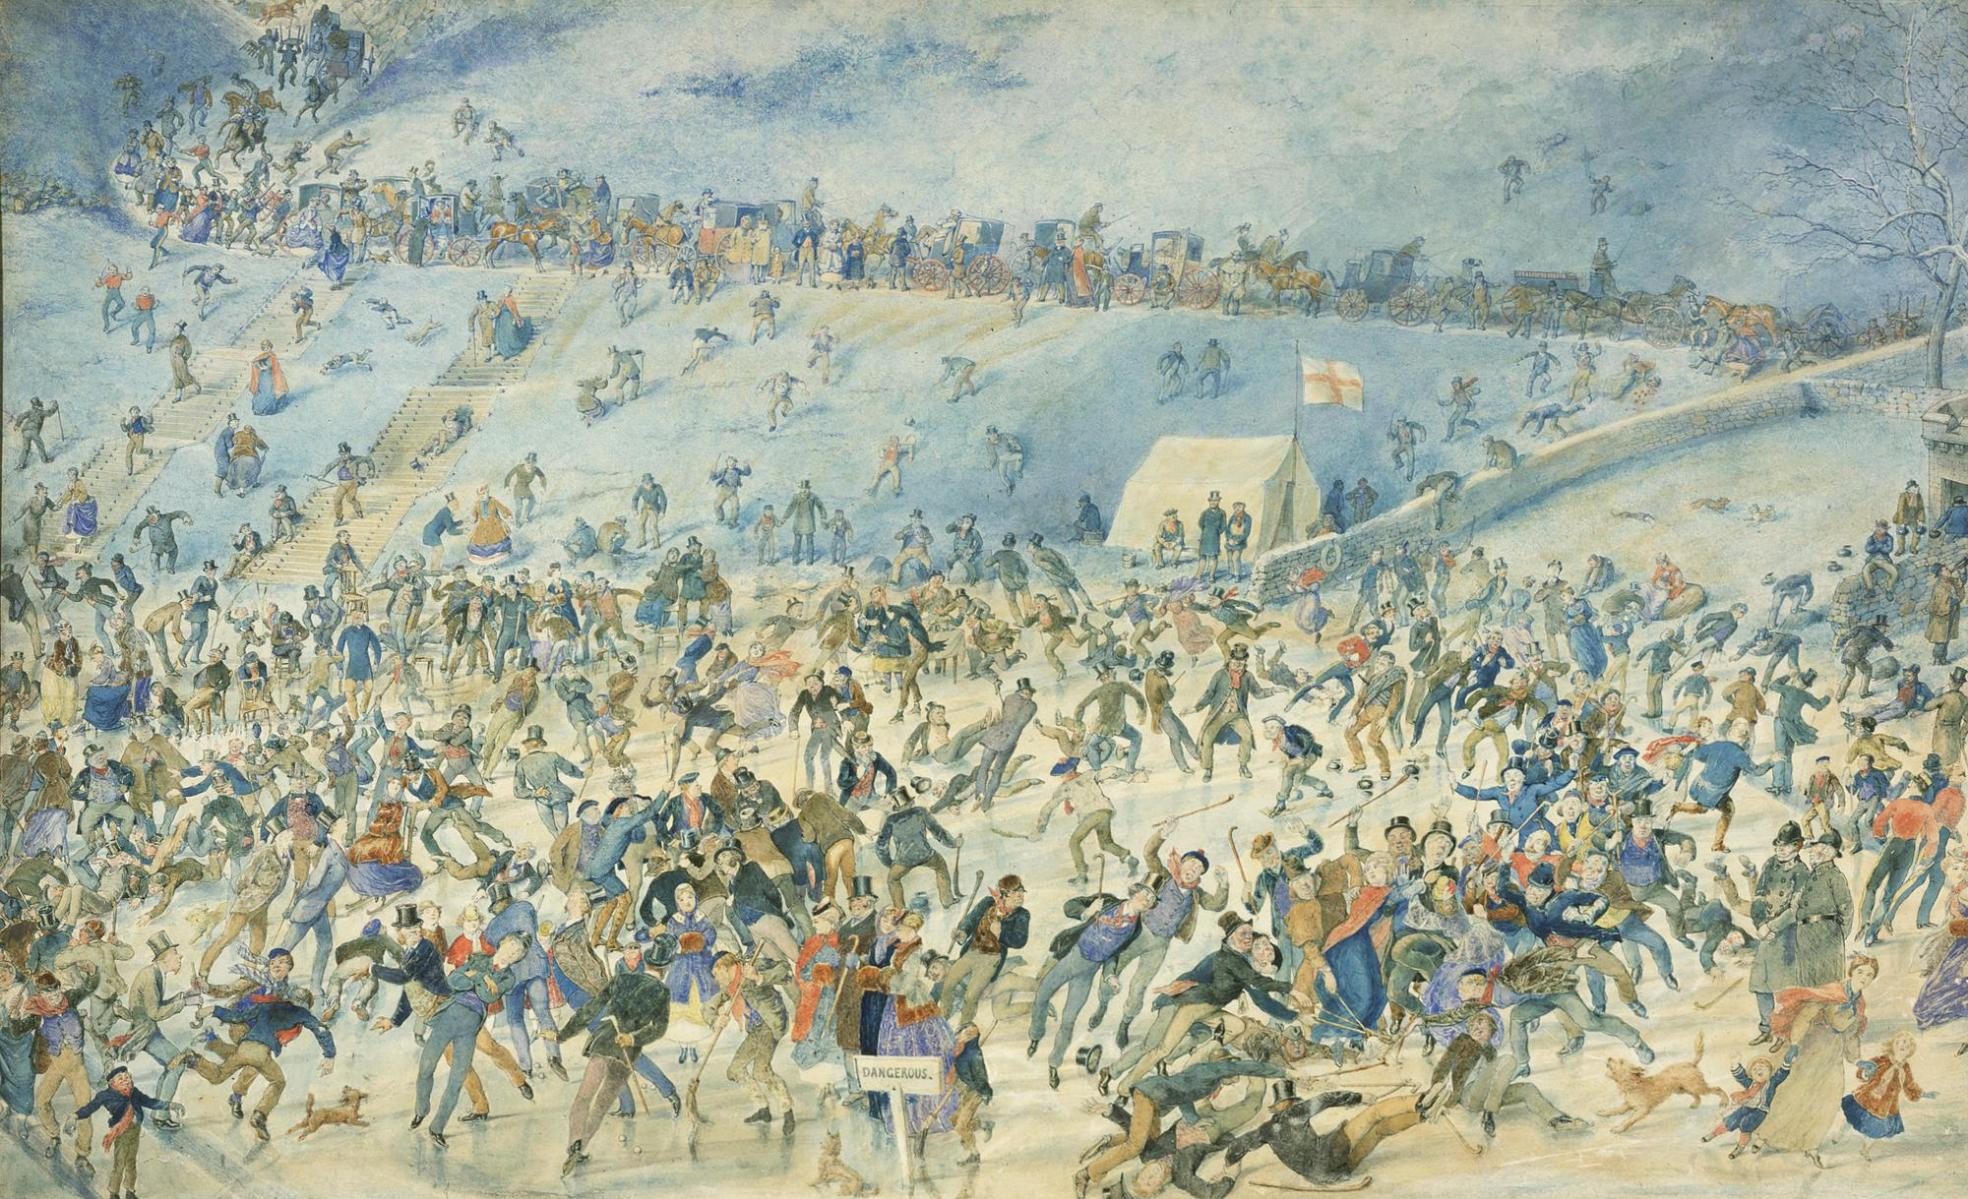 Watercolour of winter sports on a frozen Duddingston Loch, by Charles Altamont Doyle, 1876.